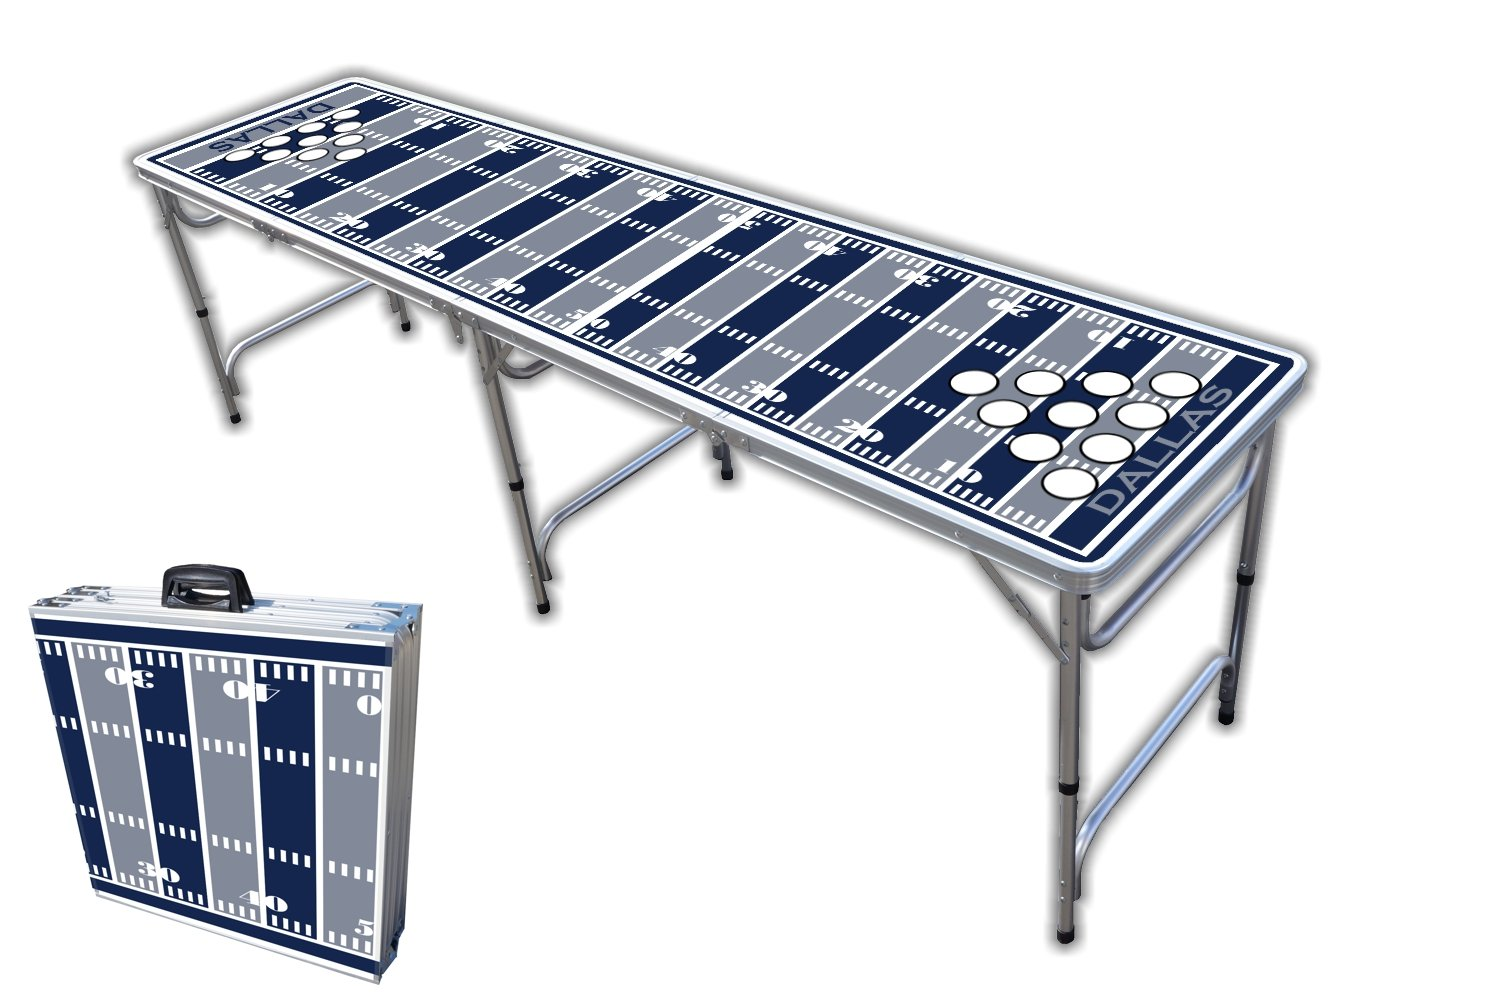 8-Foot Professional Beer Pong Table w/Holes - Dallas Football Field Graphic by PartyPongTables.com